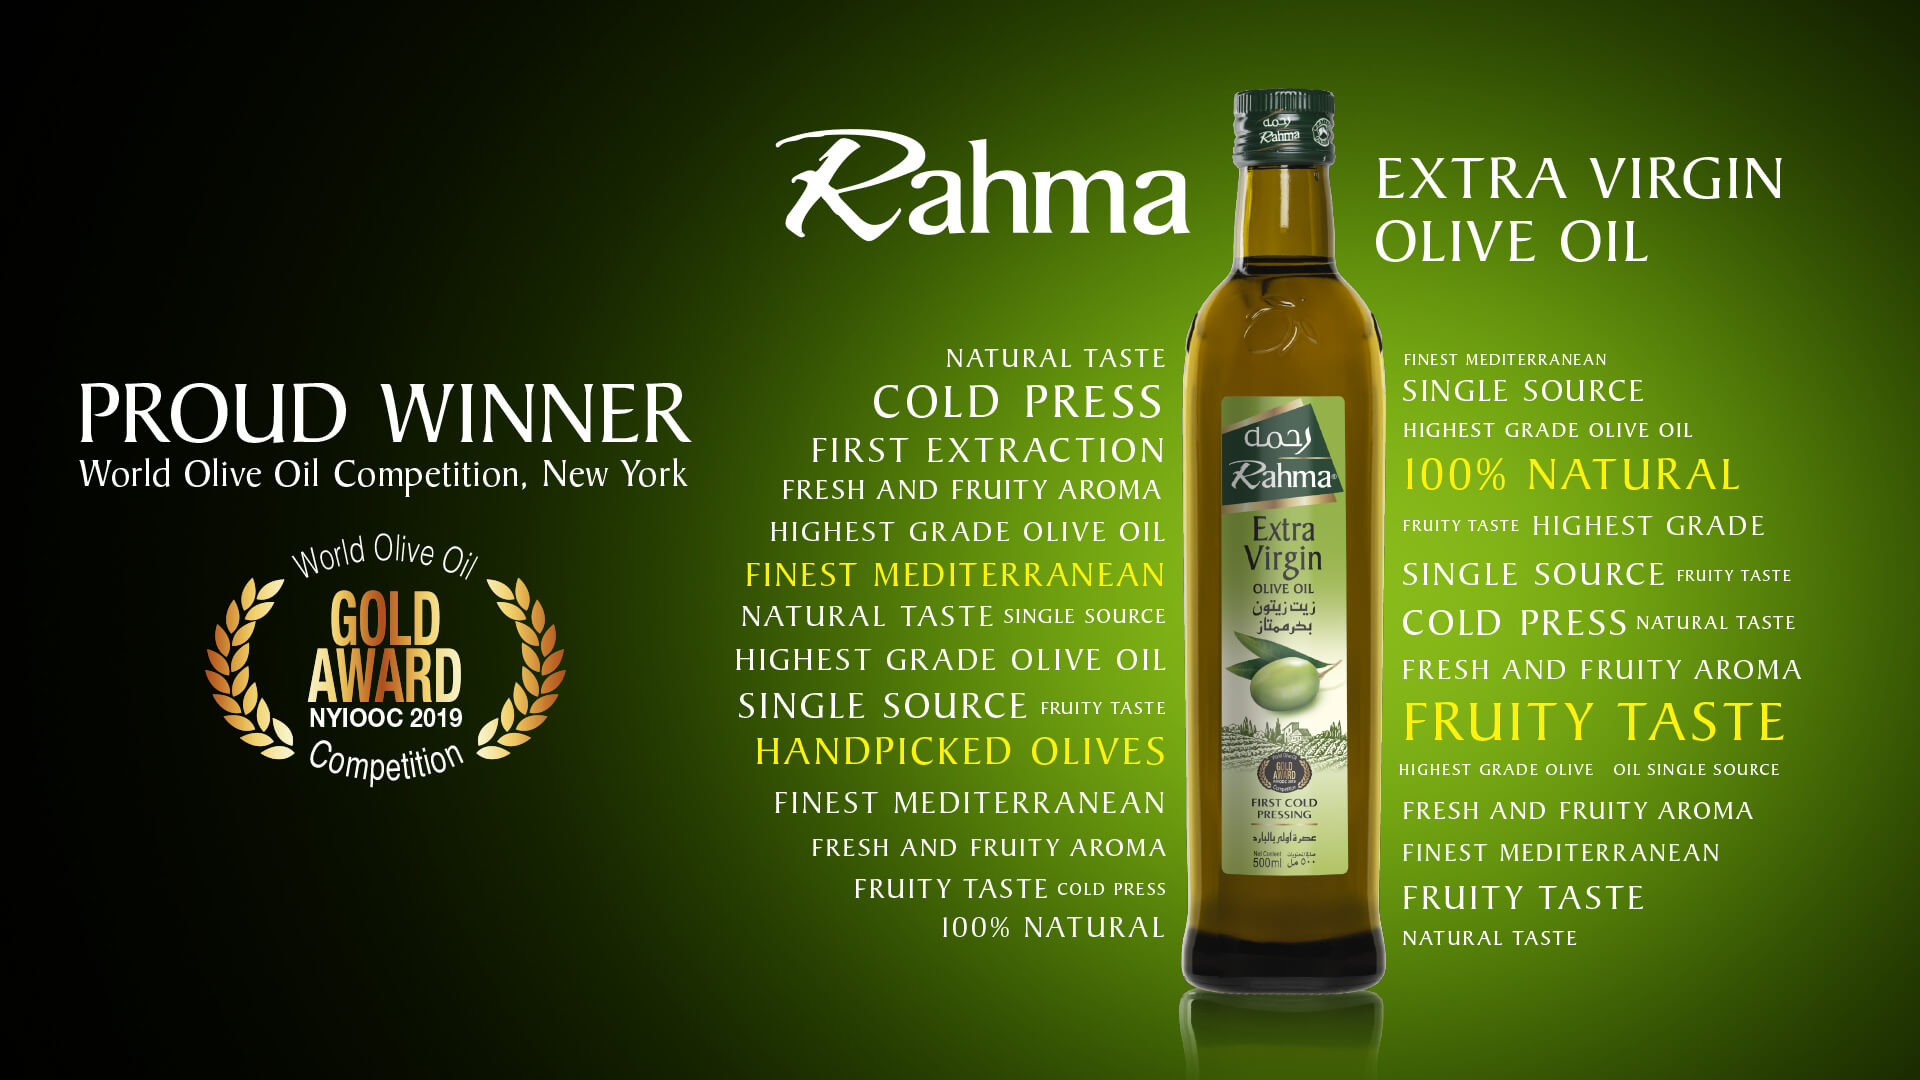 Rahma Extra Virgin Olive Oil wins Gold award at the most prestigious olive oil competition